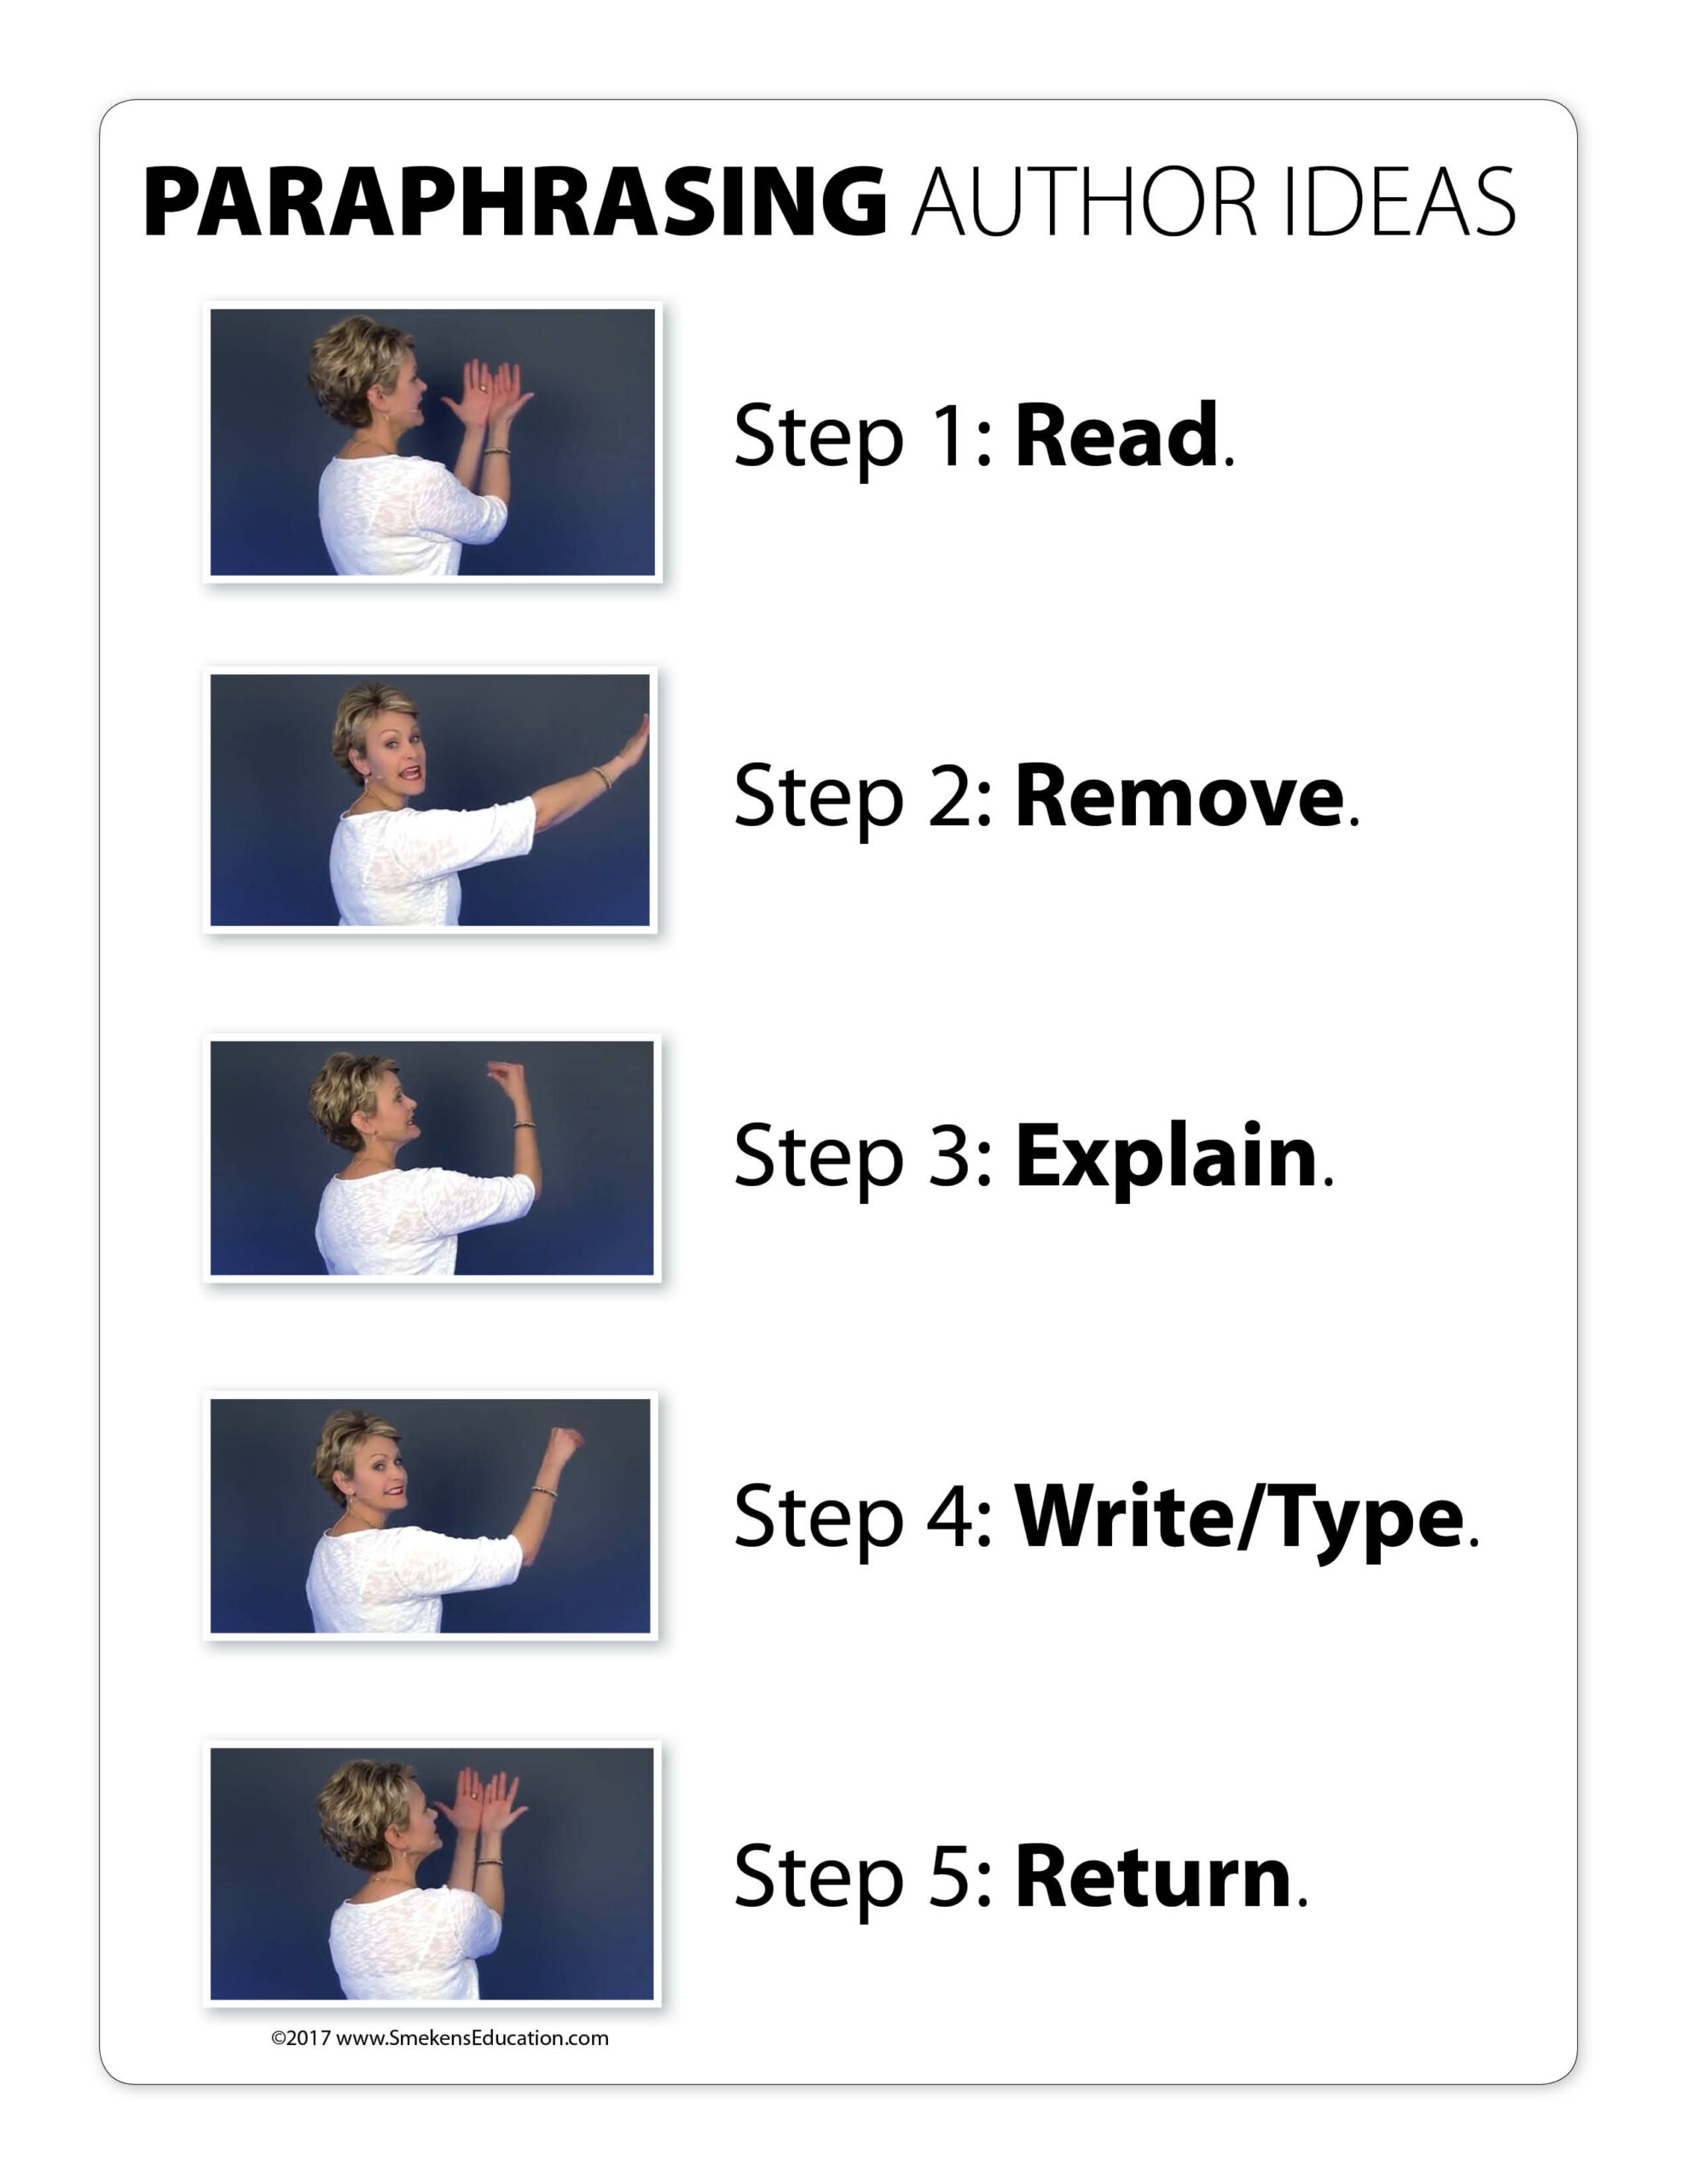 Paraphrase Author Ideas - Hand Signals